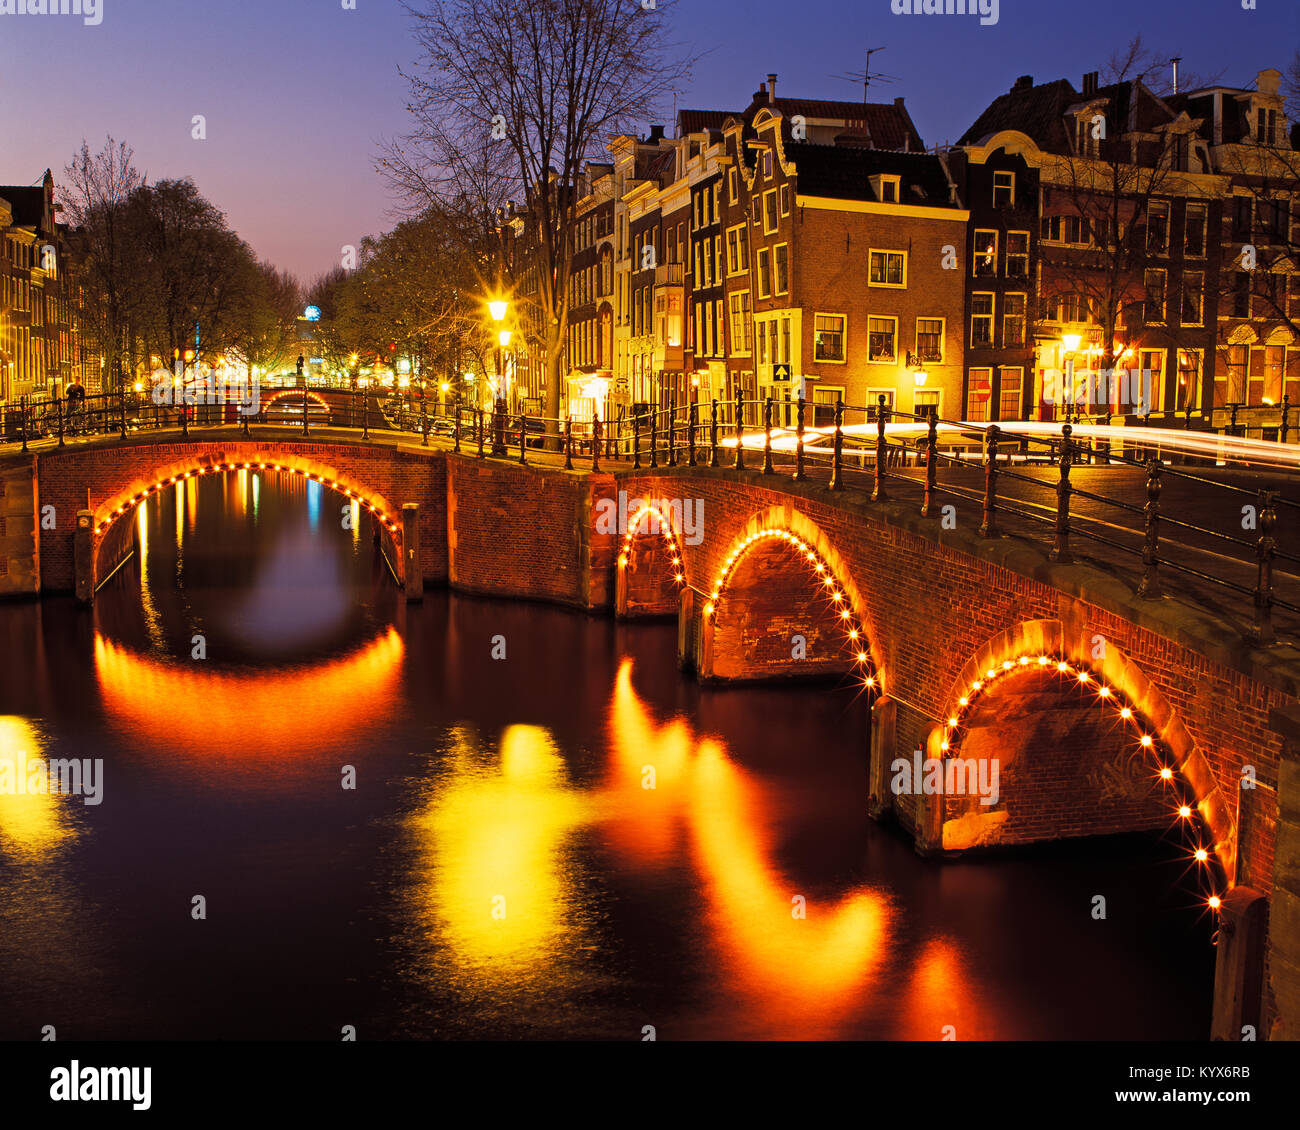 Five Bridges over the Prinsengracht Canal at dusk, Amsterdam, Holland, Netherlands. - Stock Image